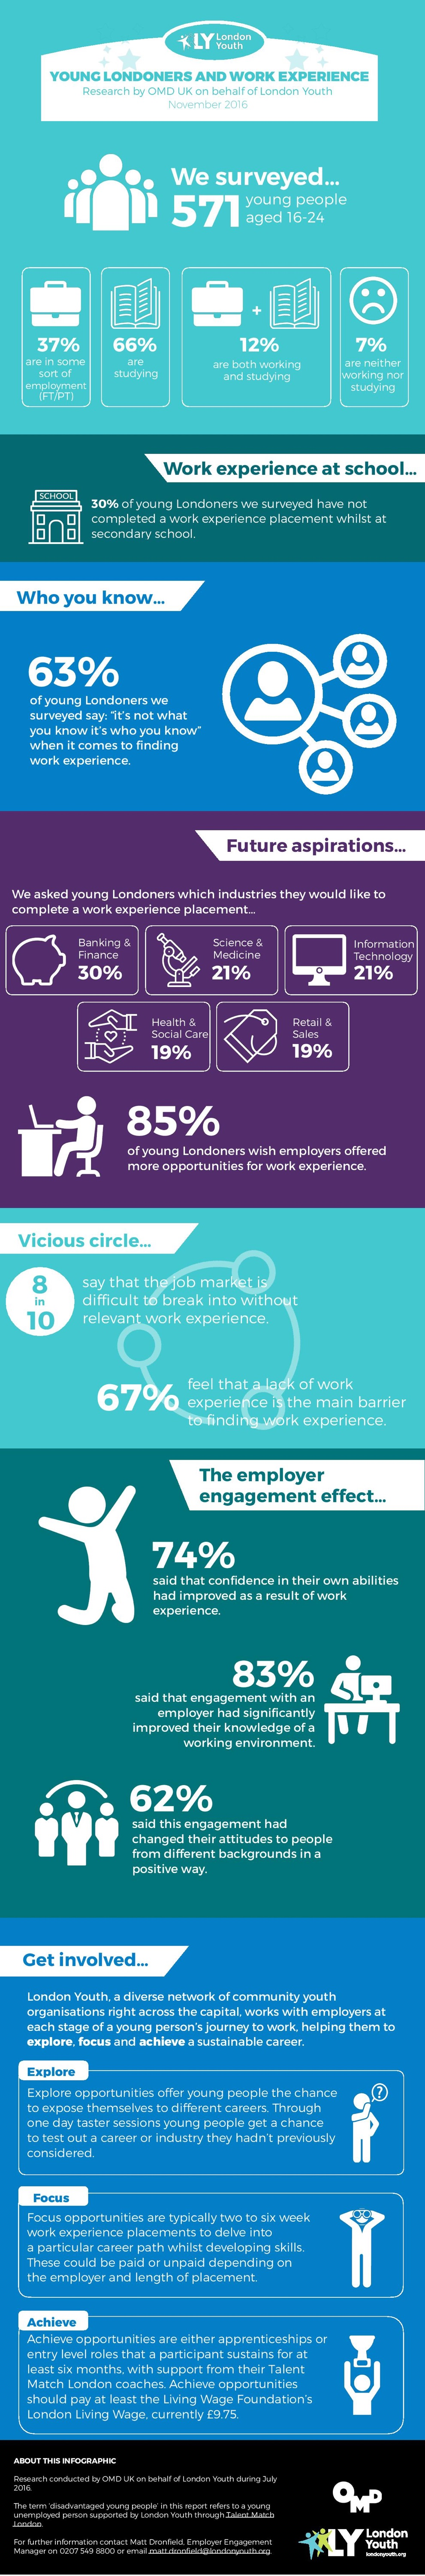 Full summary info graphic for work experience research